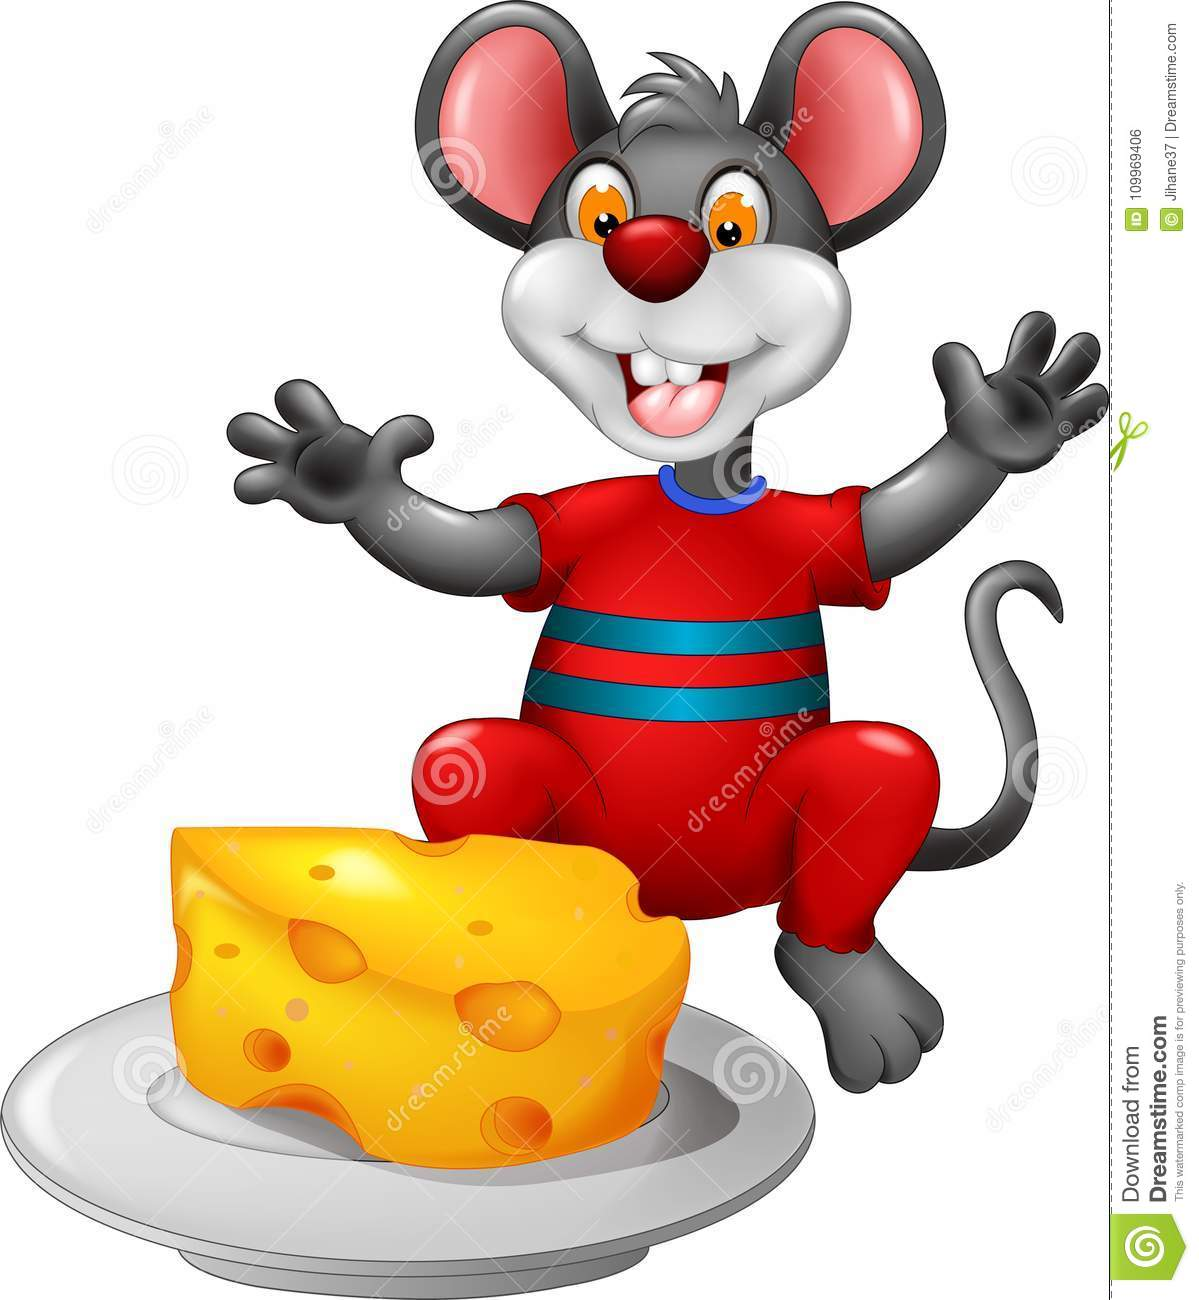 cute mouse cartoon sitting eating cheese with smile and waving stock